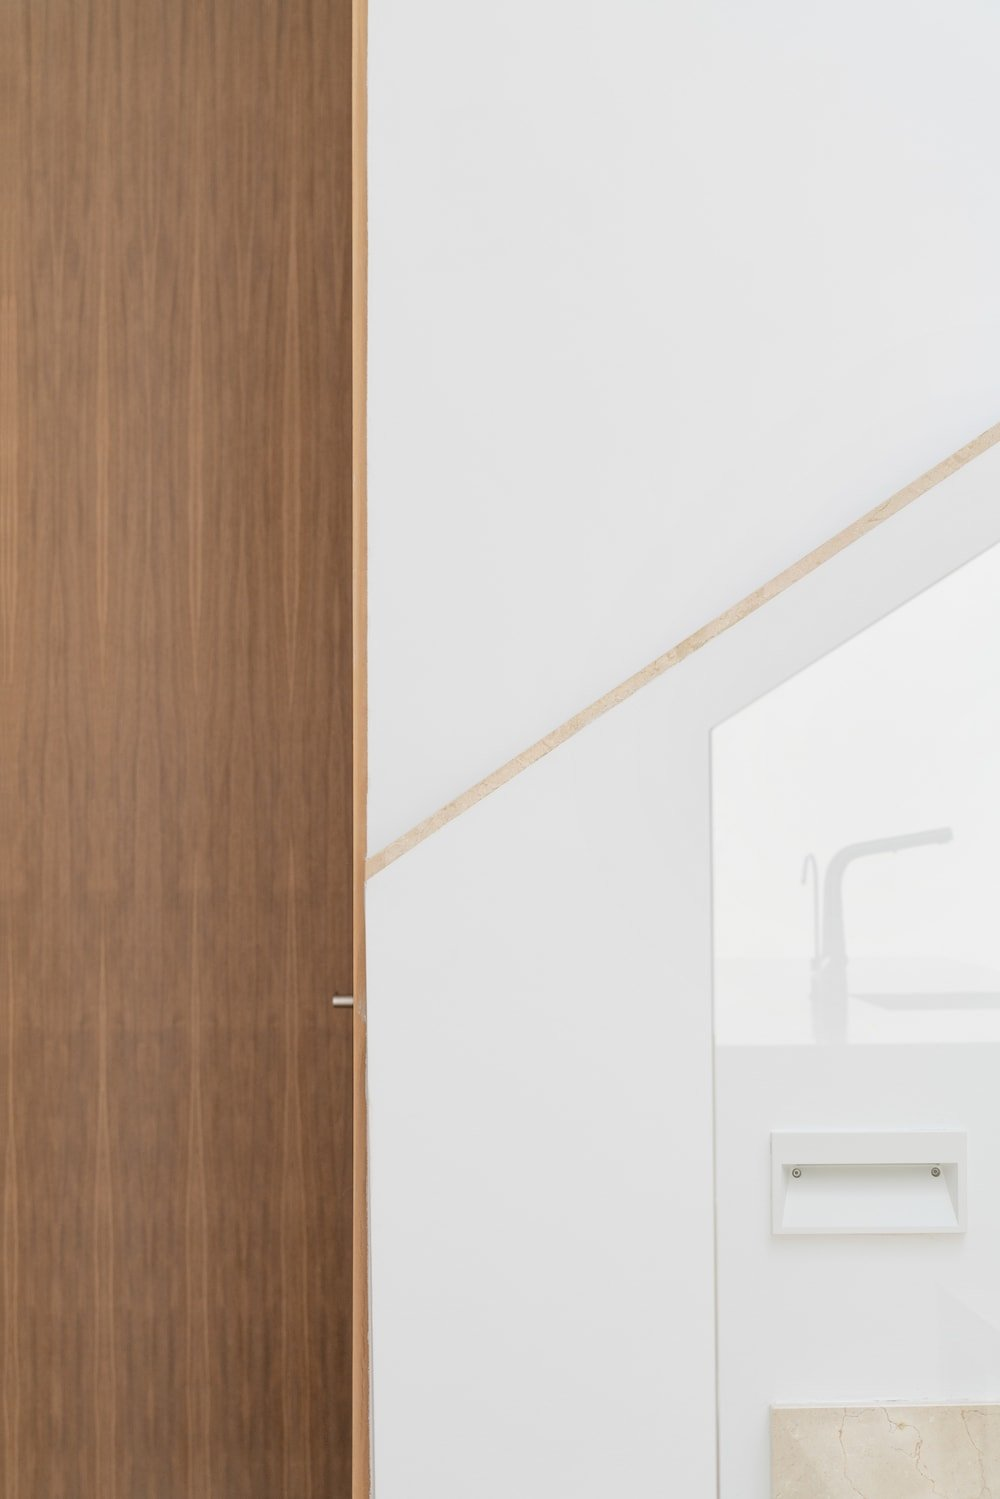 This close up look at a corner of the house appears as if a piece of modern art showing the lovely aesthetic of the house filled with white and wooden tones.